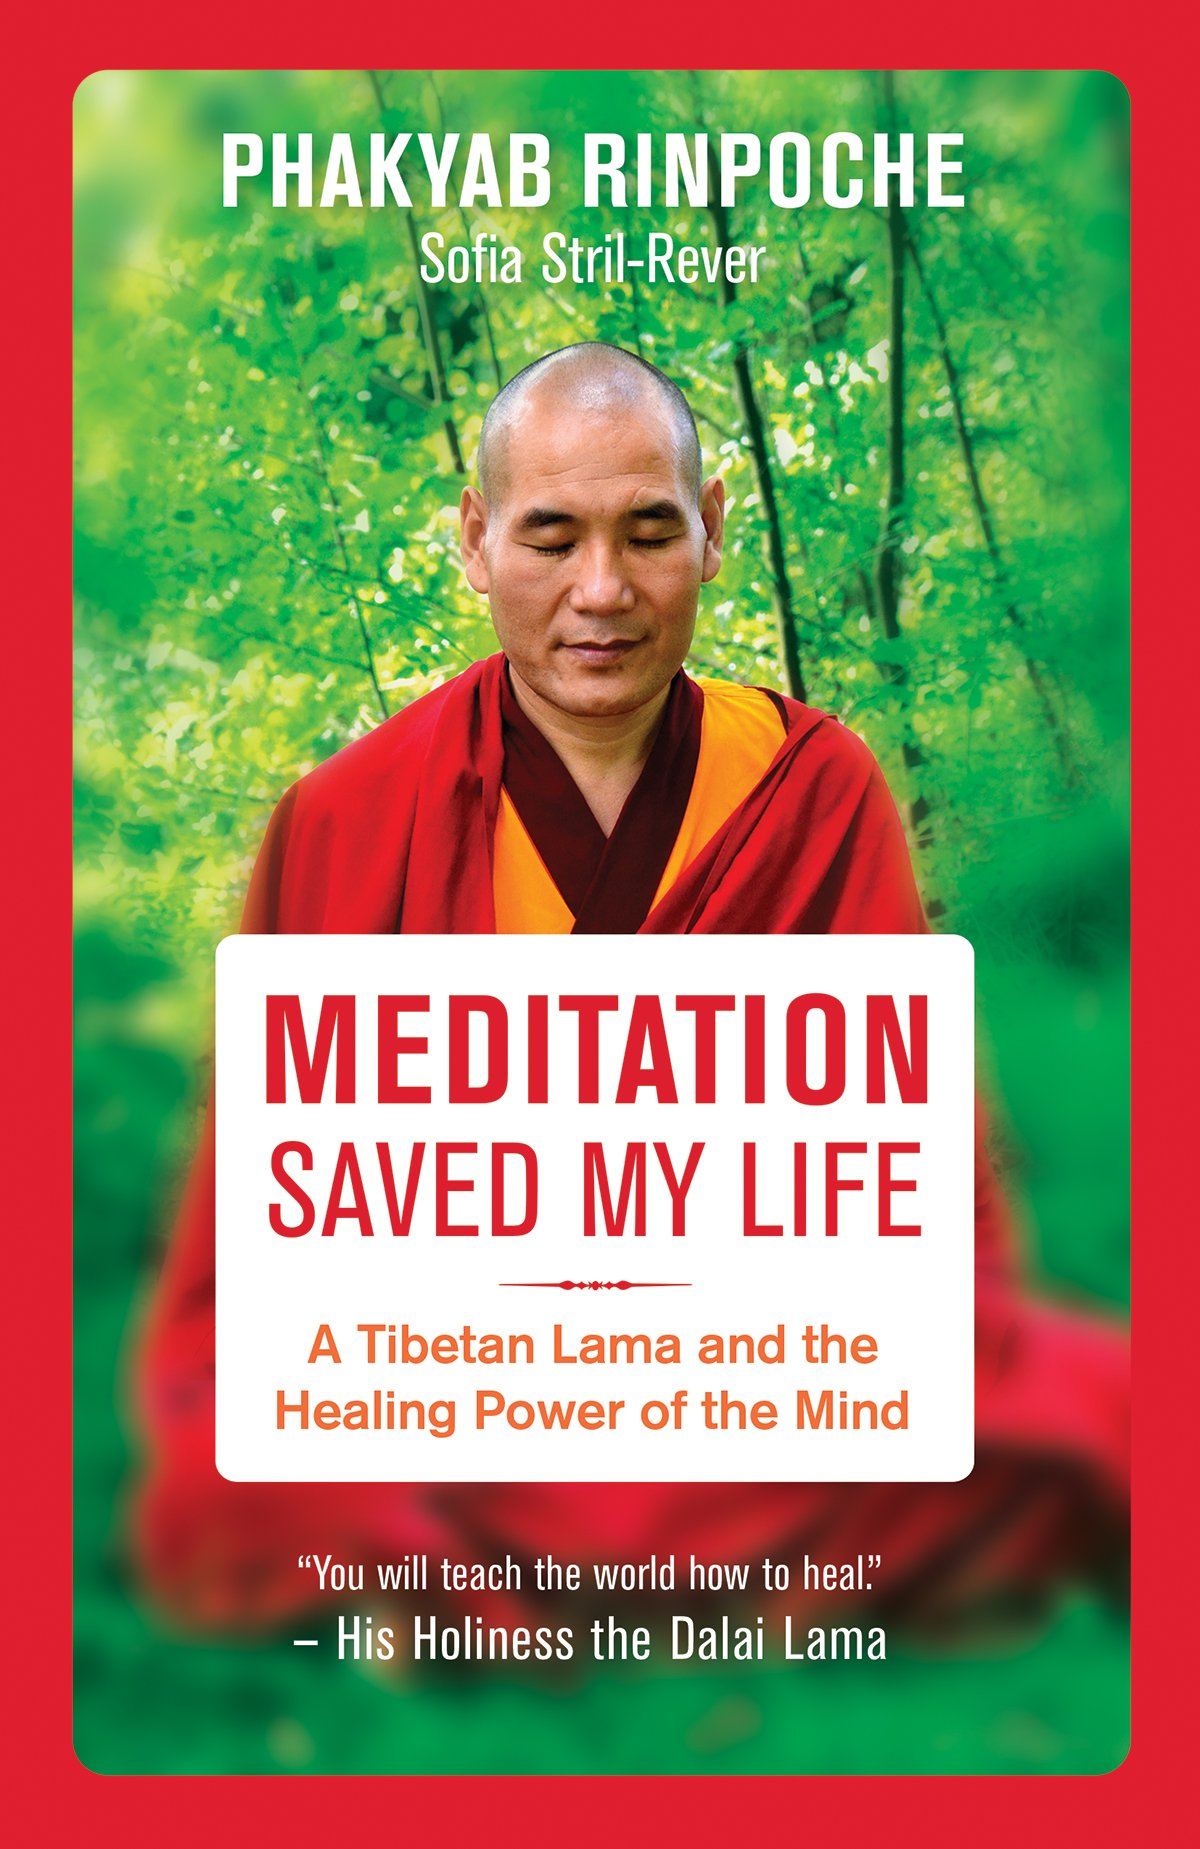 Meditation Saved My Life: A Tibetan Lama and the Healing Power of the Mind: Amazon.es: Phakyab Rinpoche, Sofia Stril-Rever: Libros en idiomas extranjeros